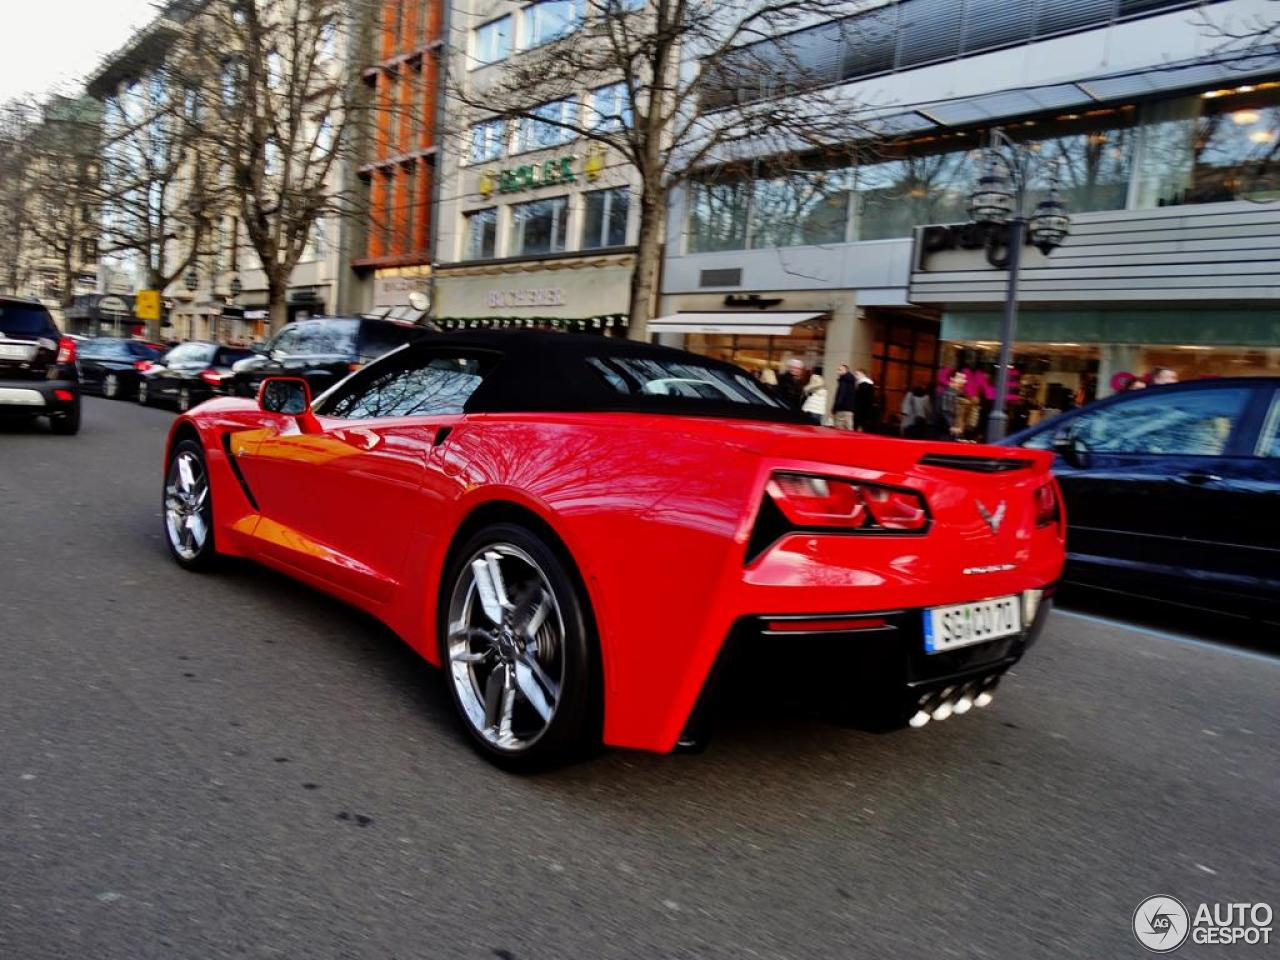 Chevrolet Corvette C7 Stingray Convertible 3